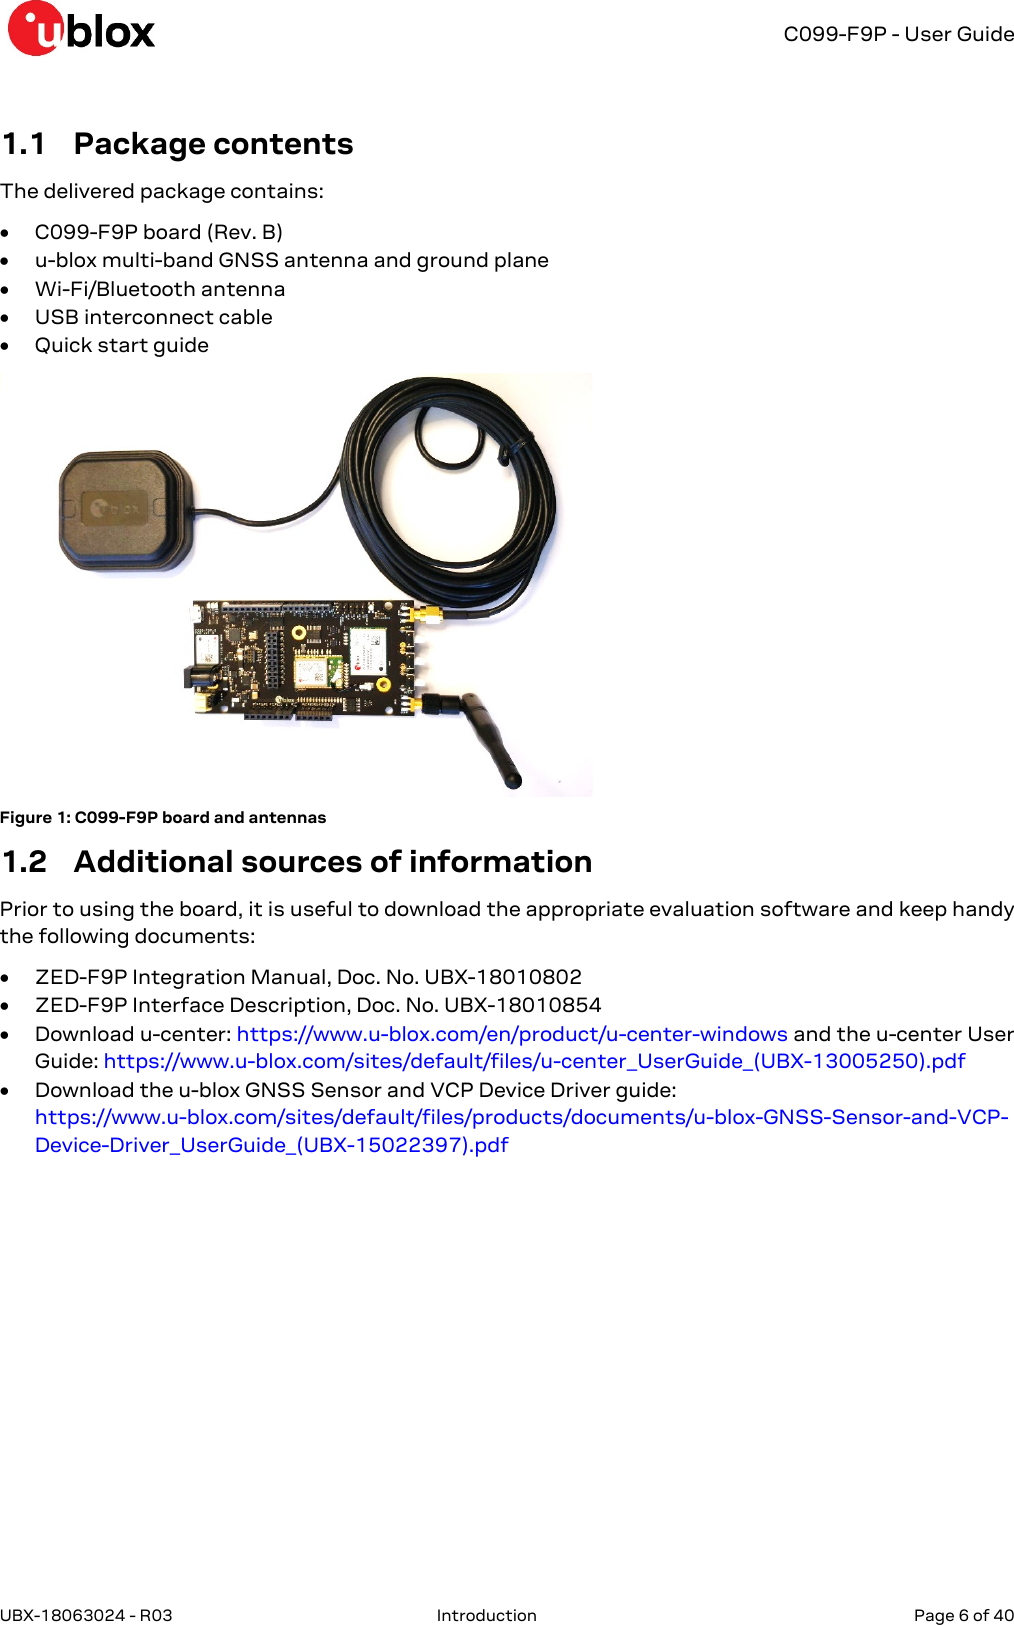 C099 F9P App Board Mbed OS3 FW User Guide (UBX 18063024)